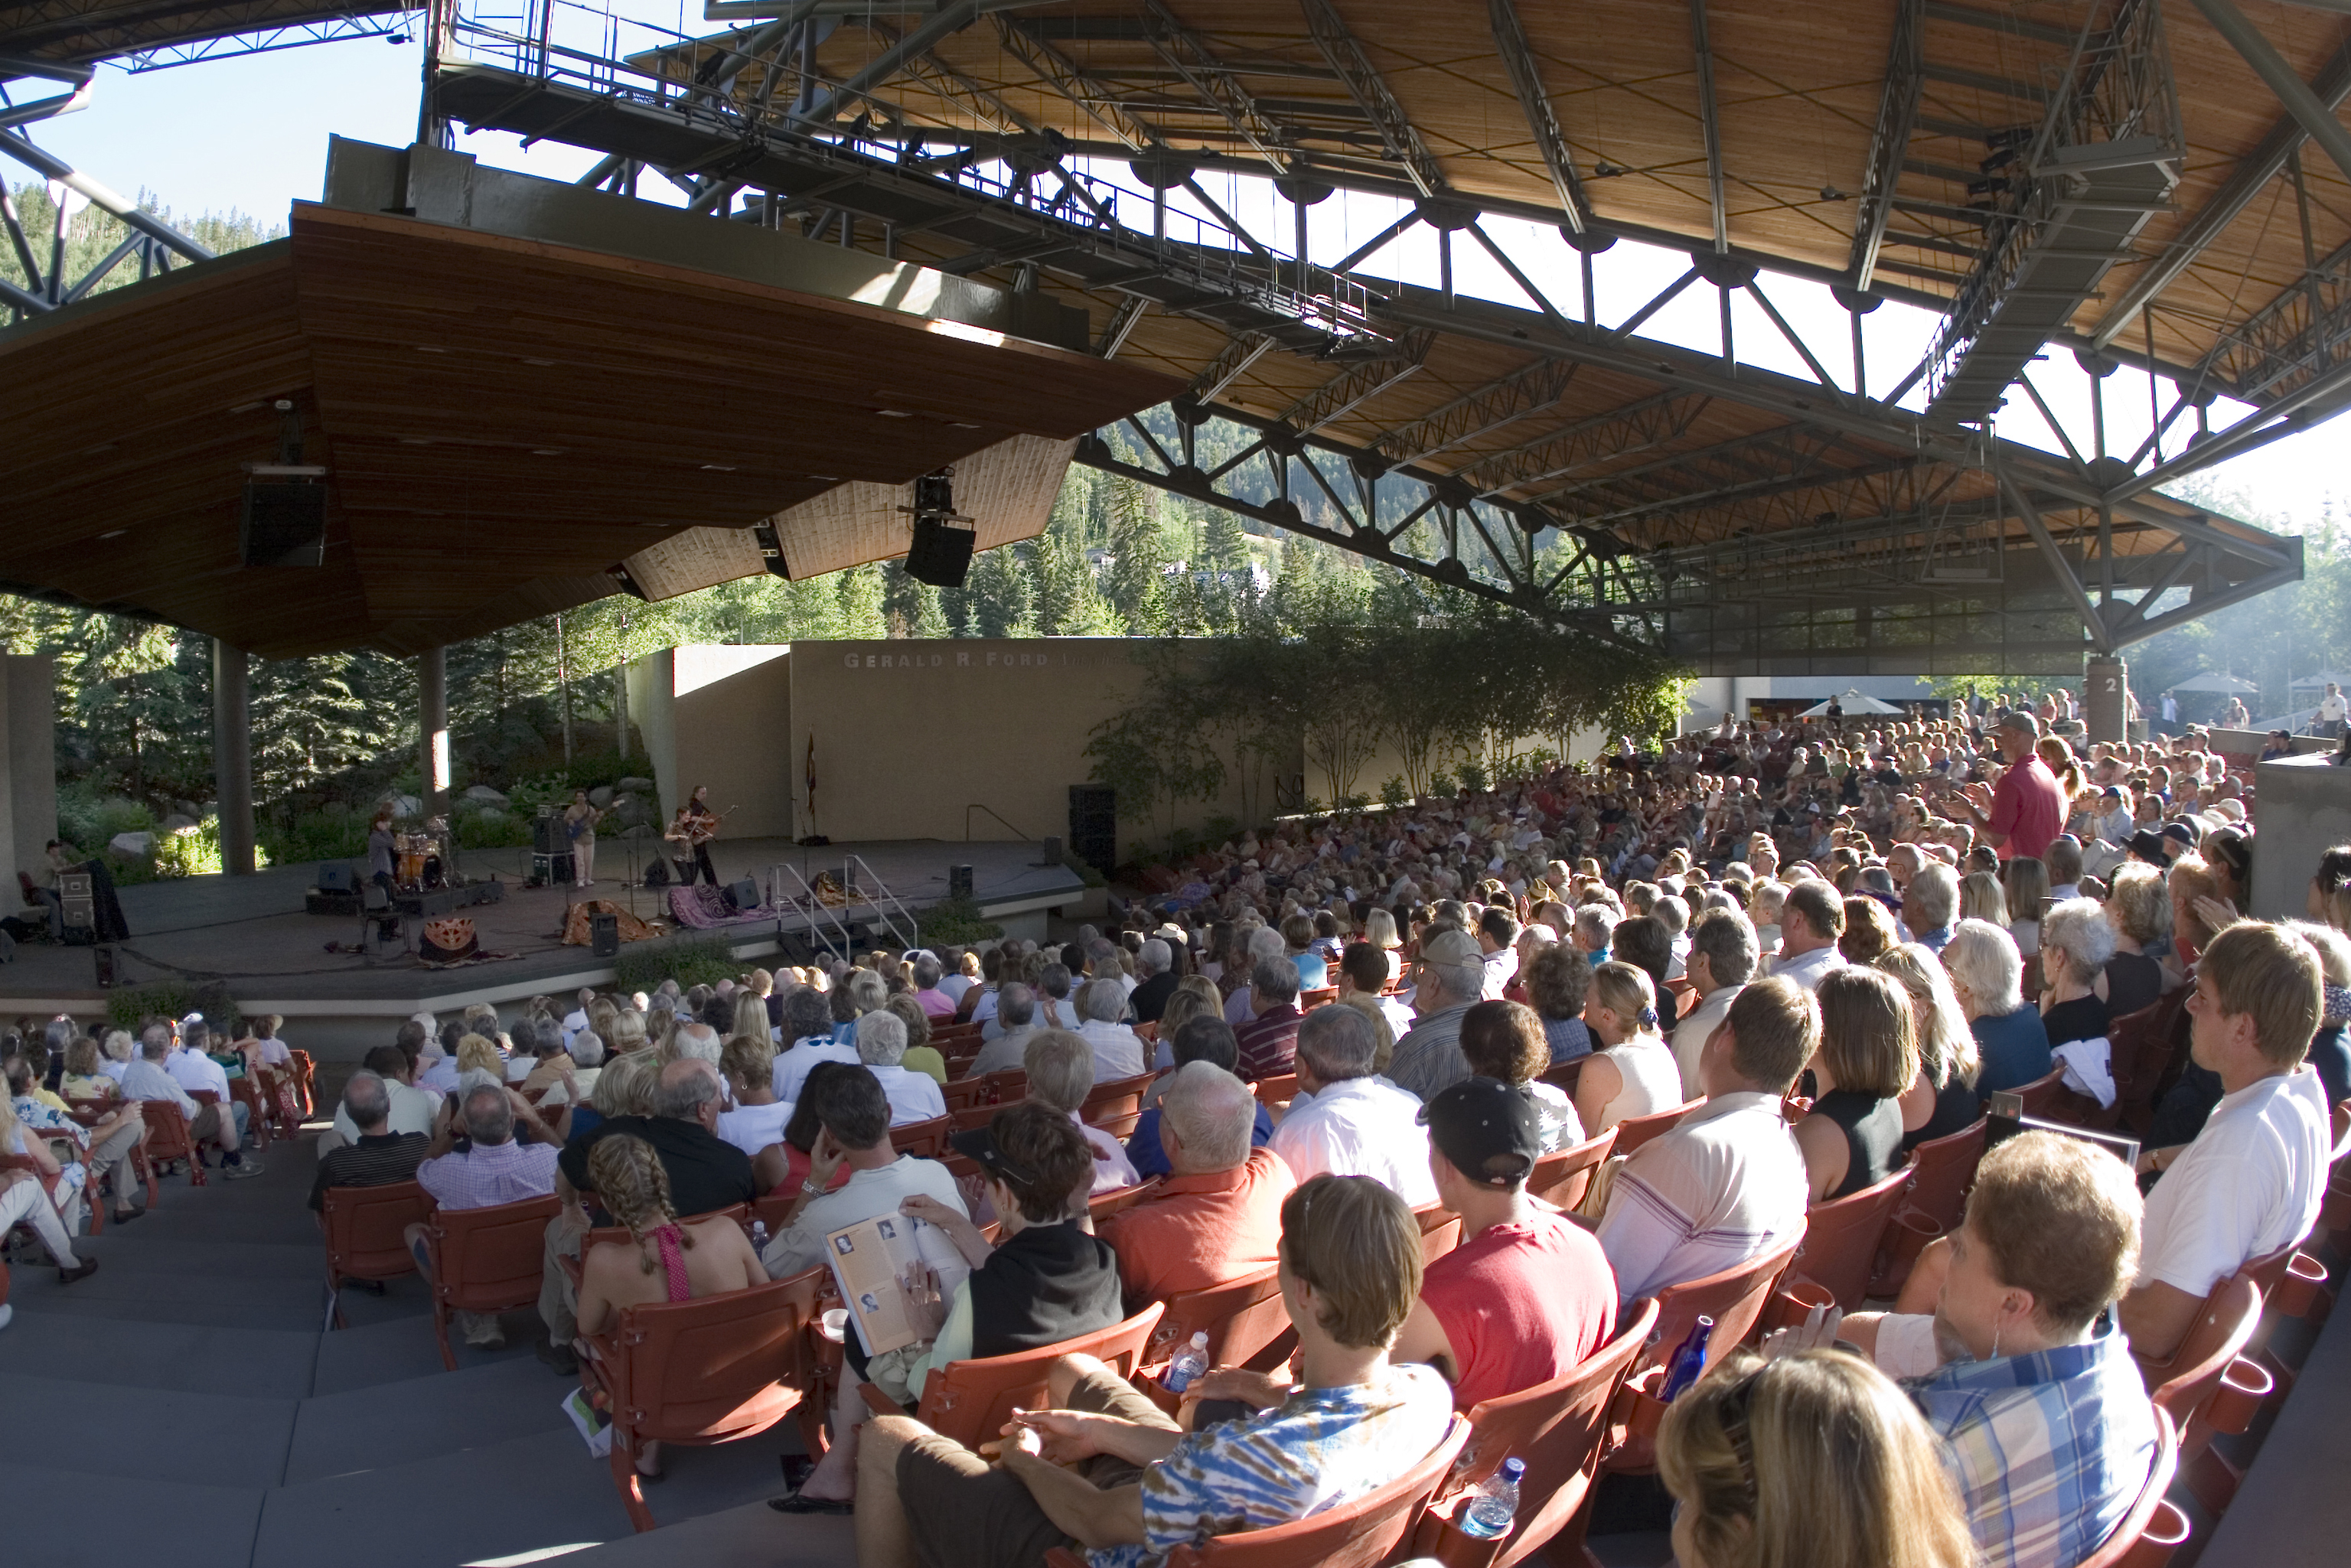 A Concert At The Gerald R Ford Amphitheater In Vail